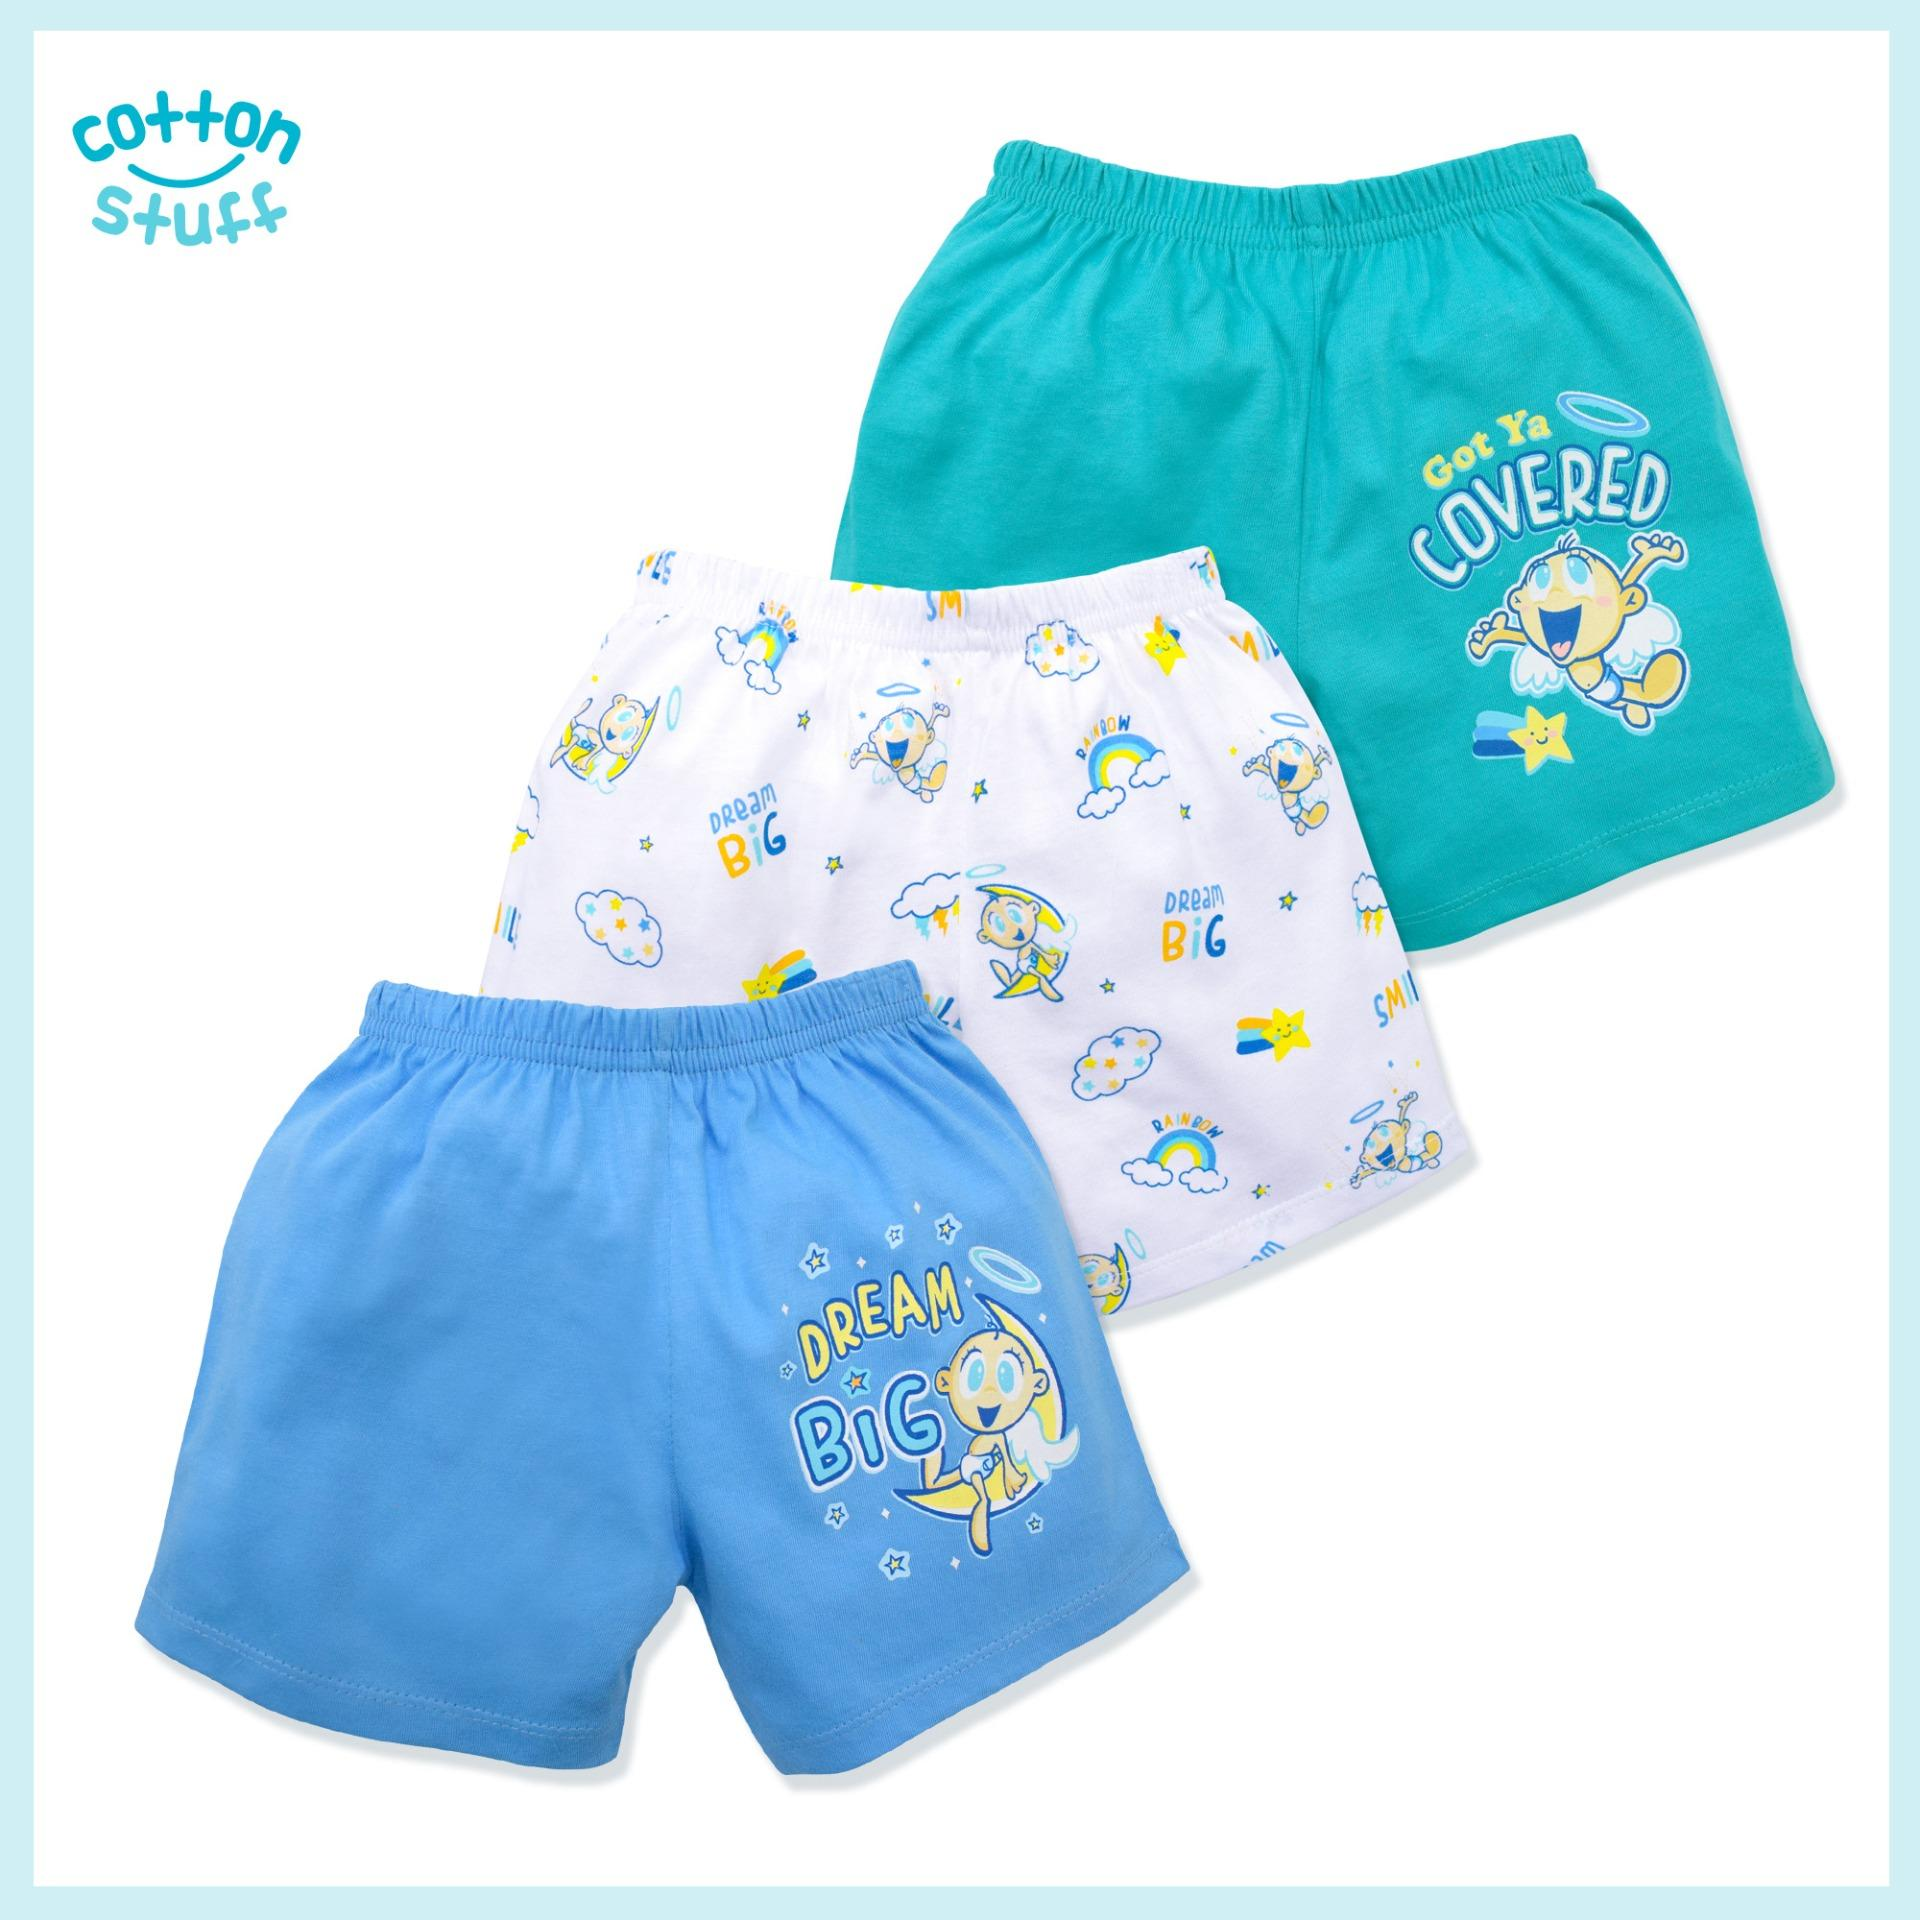 Cotton Stuff - 3-Piece Shorts (rainbow - Boy) By Cotton Stuff.